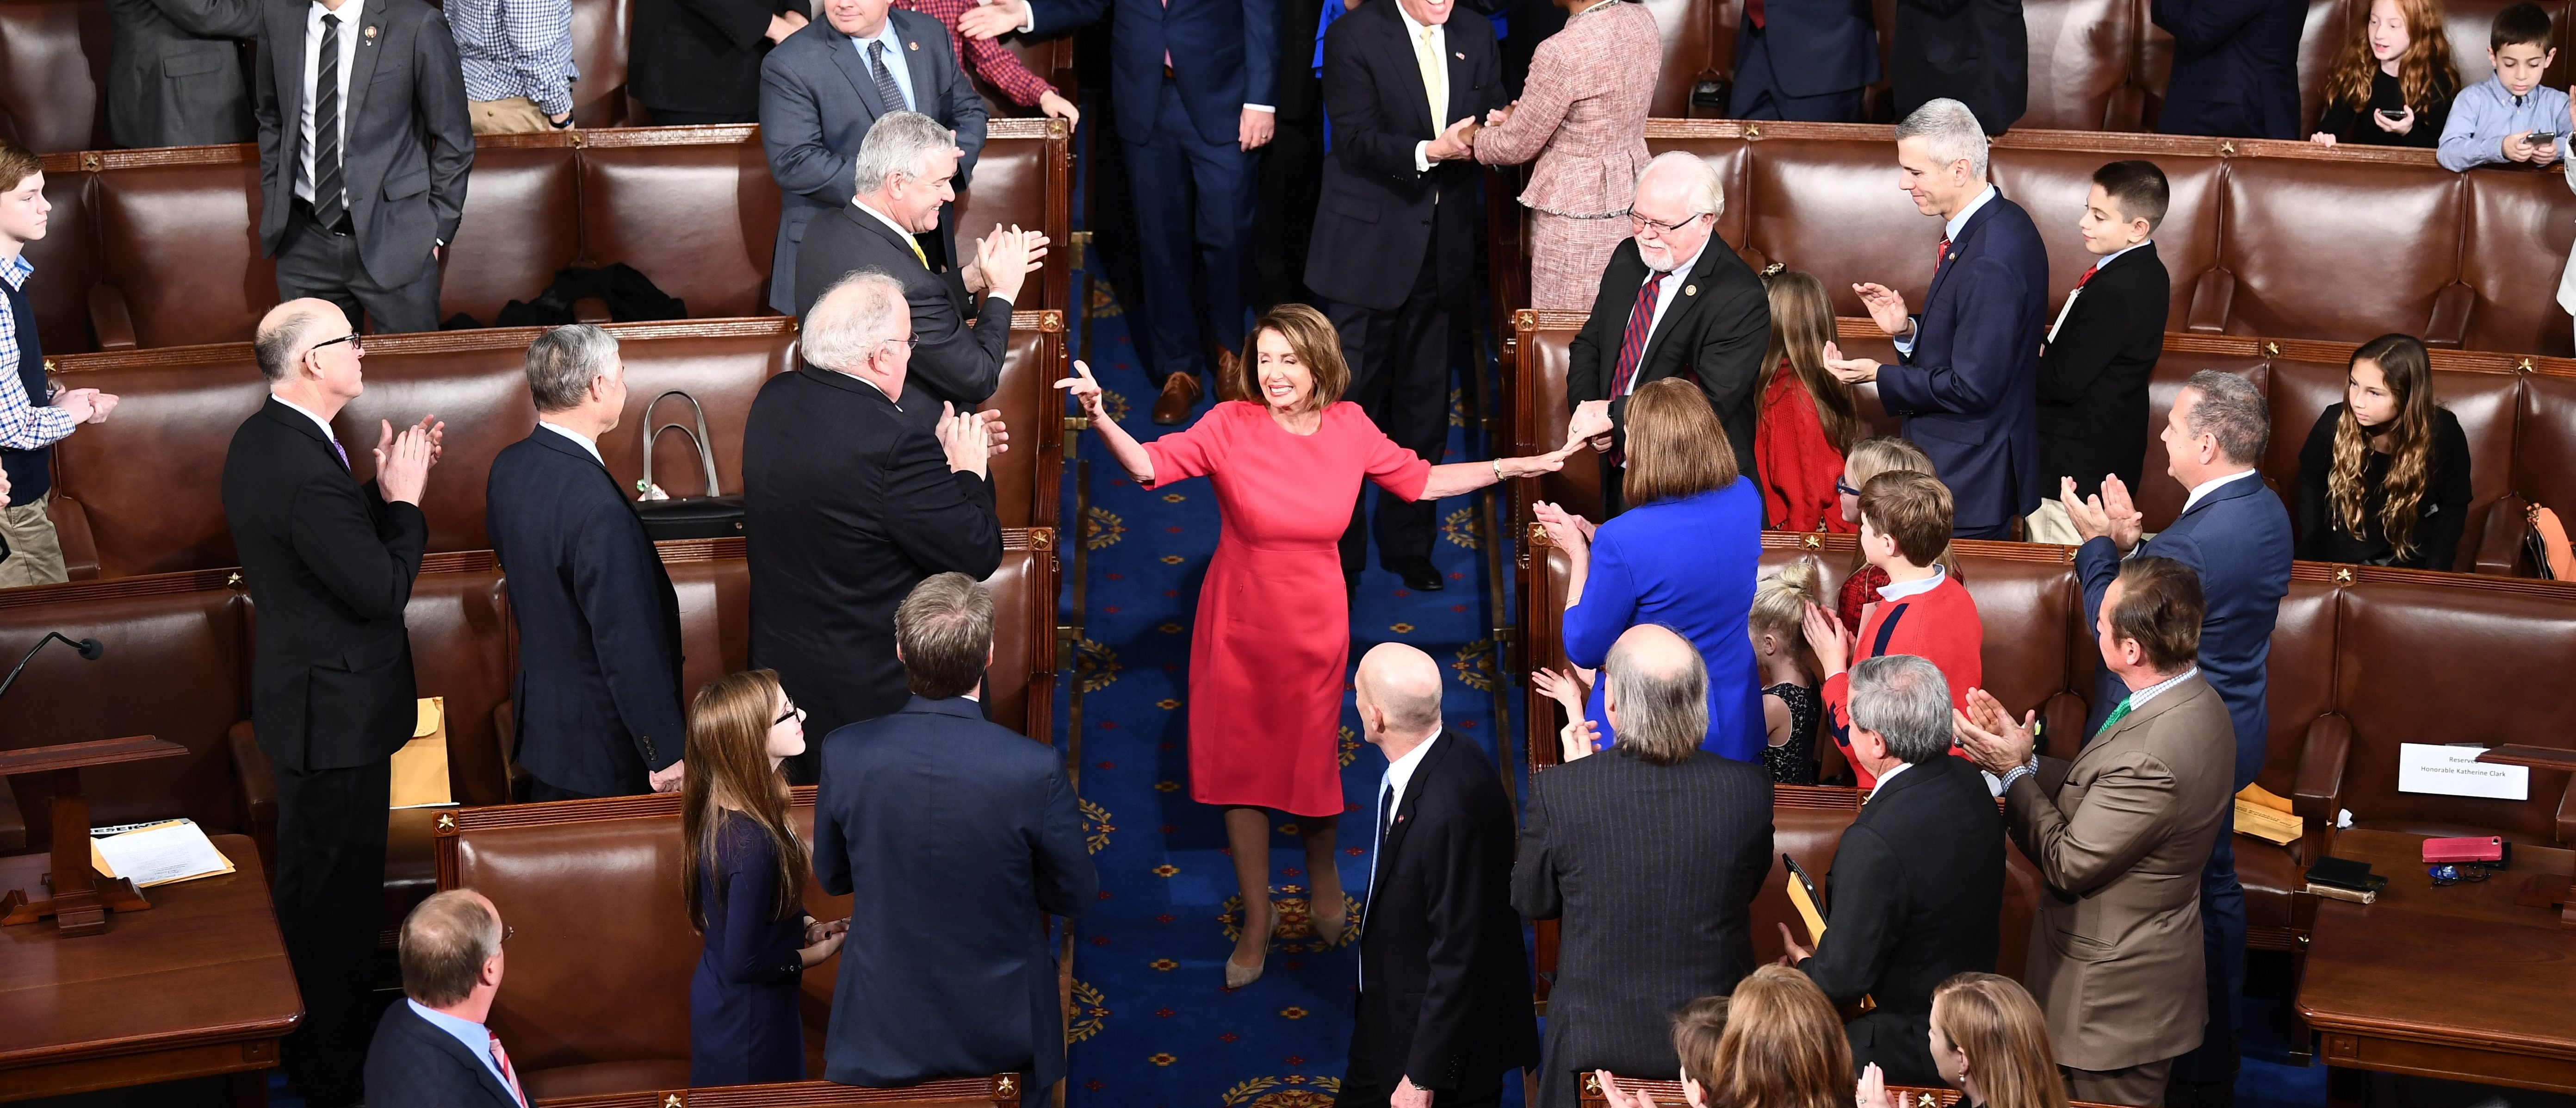 Incoming House Speaker Nancy Pelosi, D-CA, arrives during the opening session of the 116th Congress at the US Capitol in Washington, DC, January 3, 2019. (Photo by Brendan Smialowski / AFP)